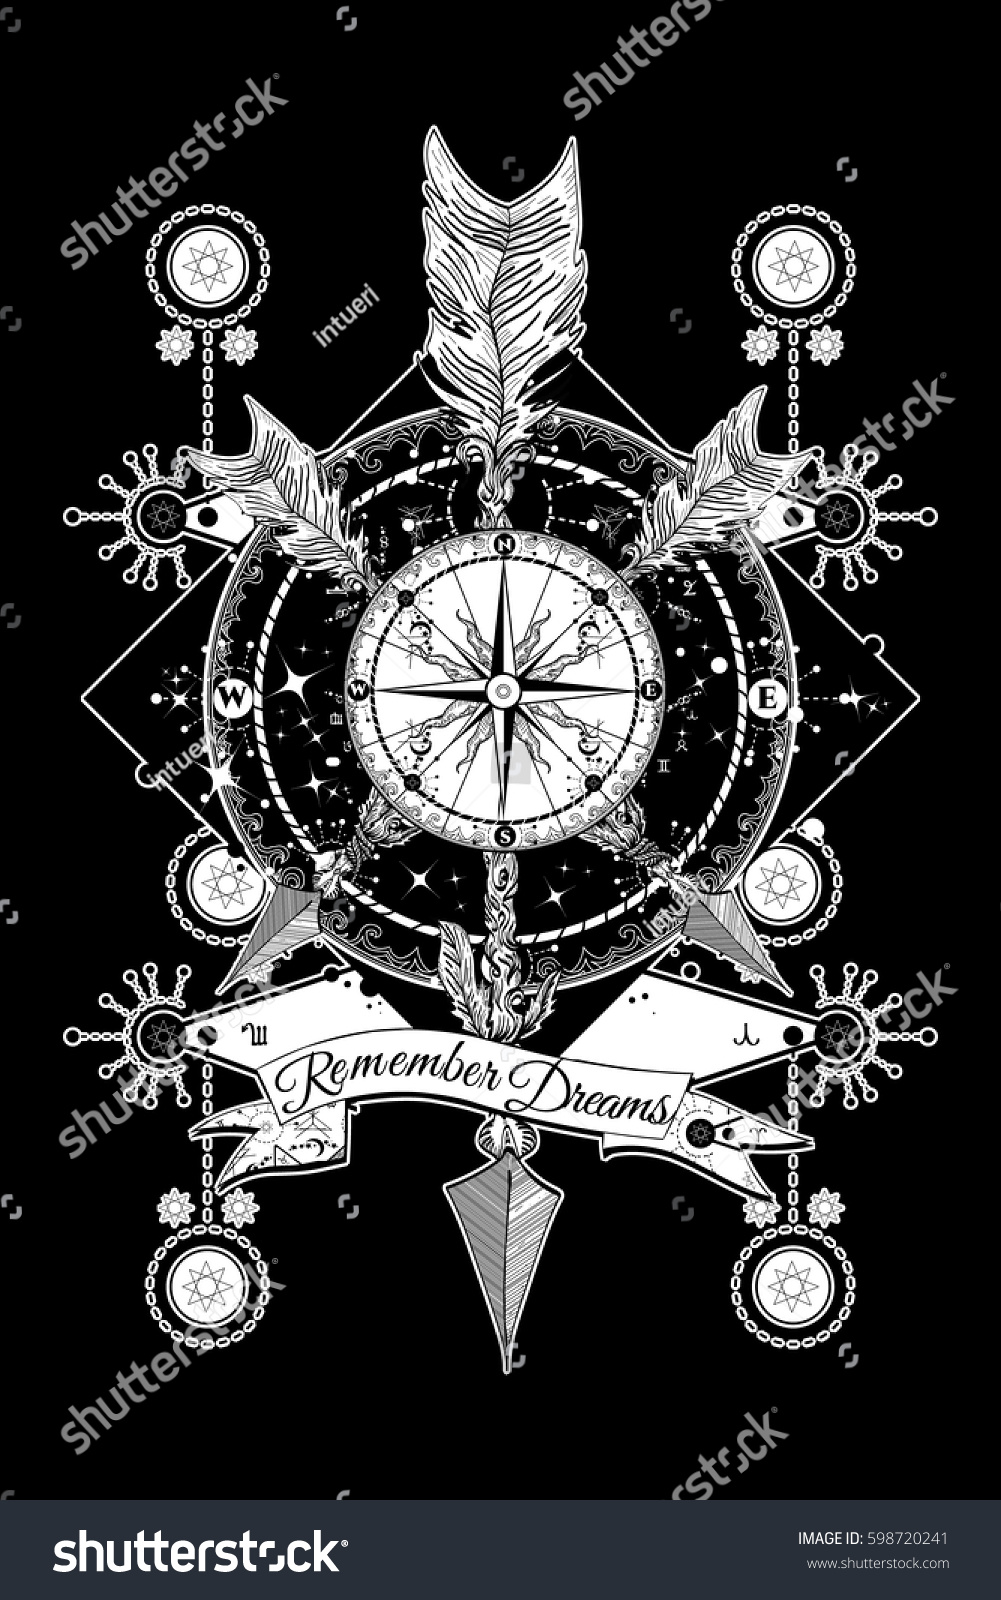 Rose Compass Crossed Arrows Tattoo Boho Stock Vector Royalty Free